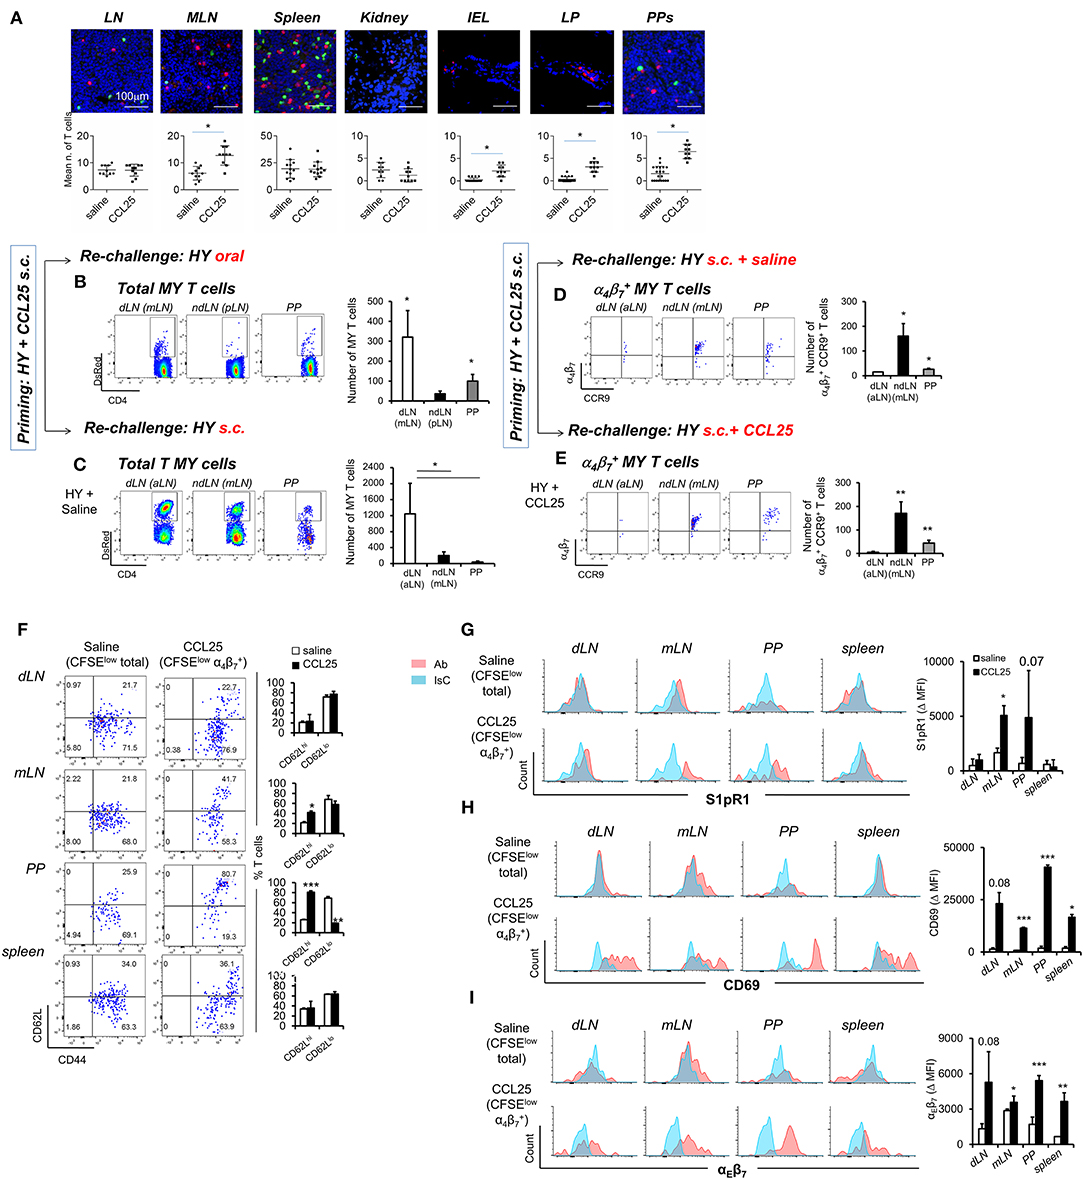 Frontiers | A Subset of CCL25-Induced Gut-Homing T Cells